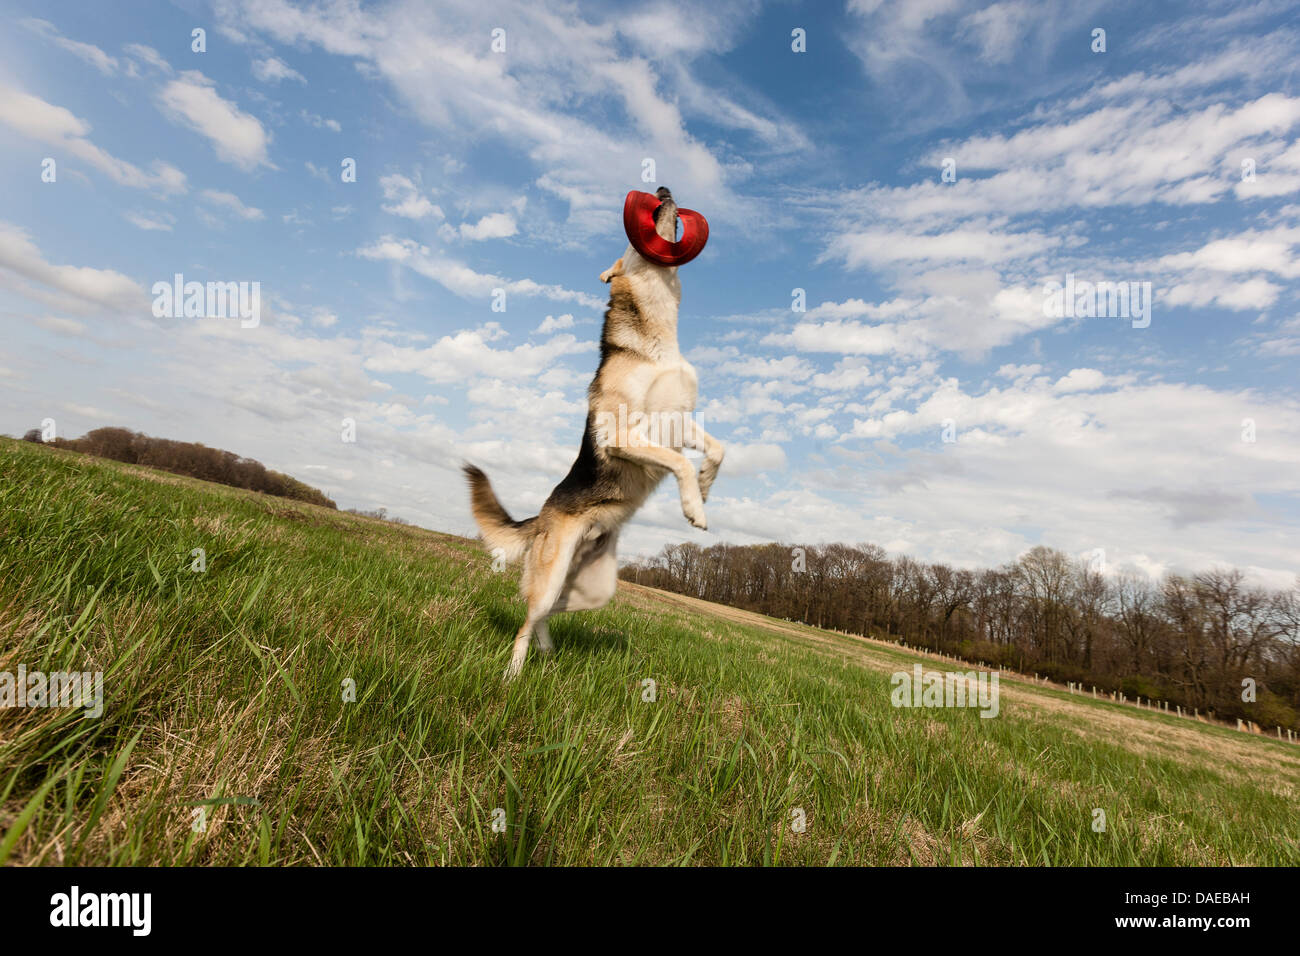 Alsatian dog leaping up to catch frisbee - Stock Image